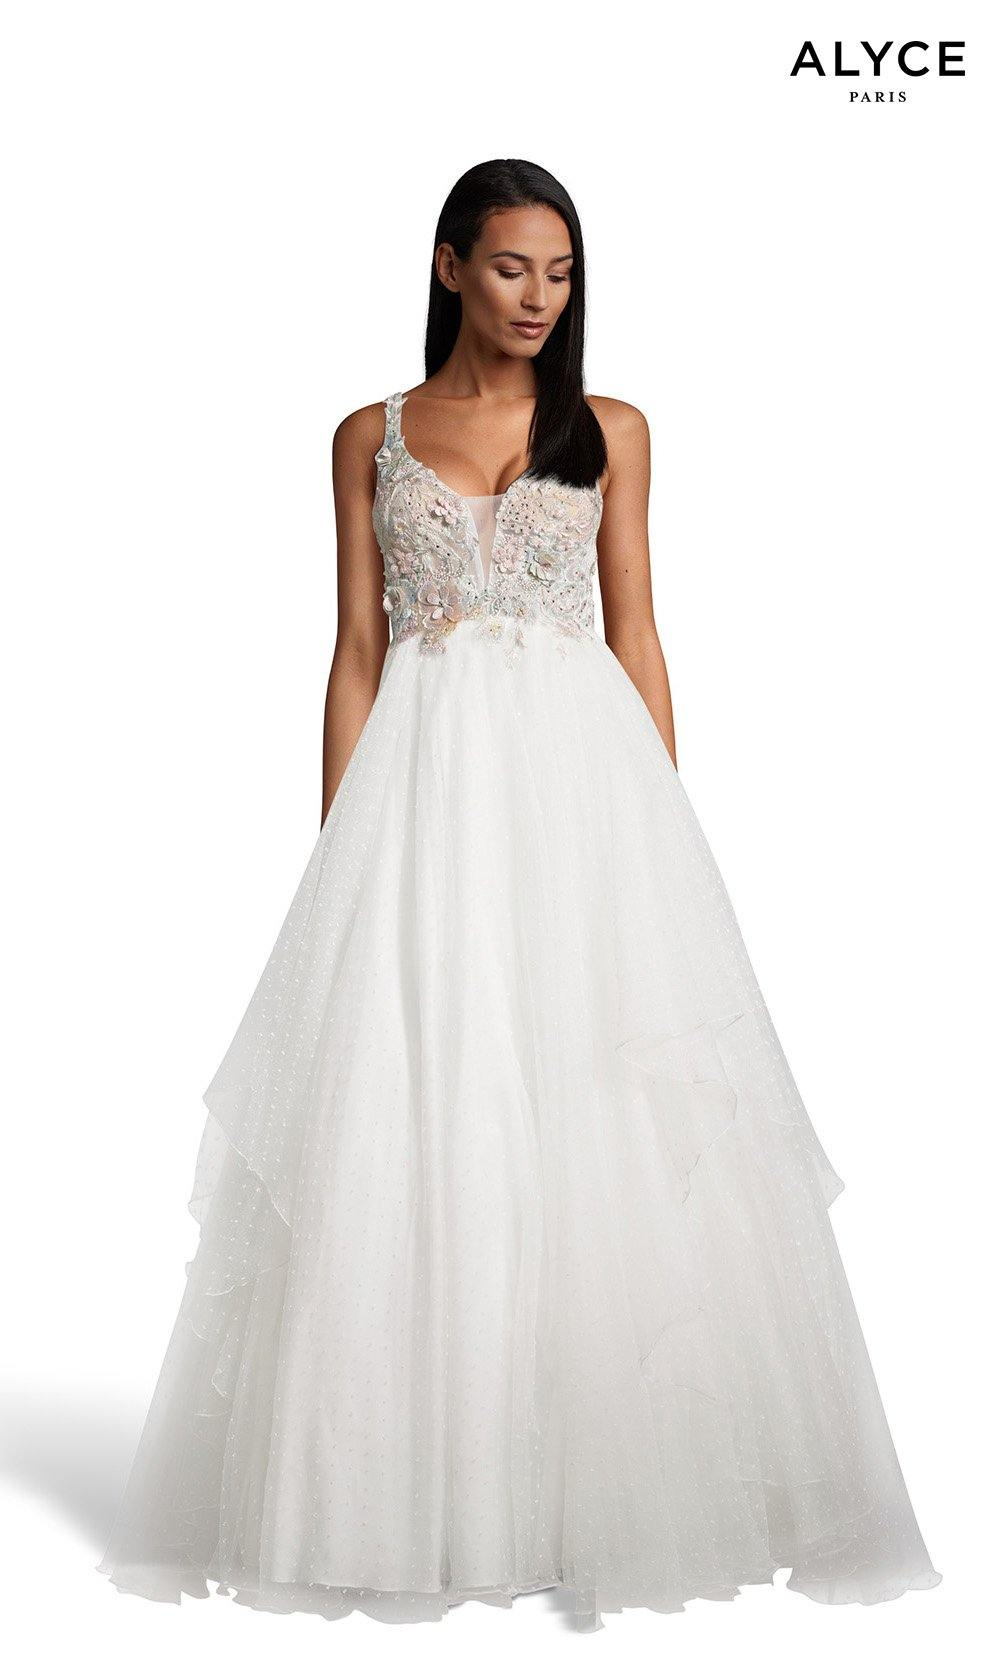 Diamond White layered ball gown with 3d florals on bodice and a plunging neckline